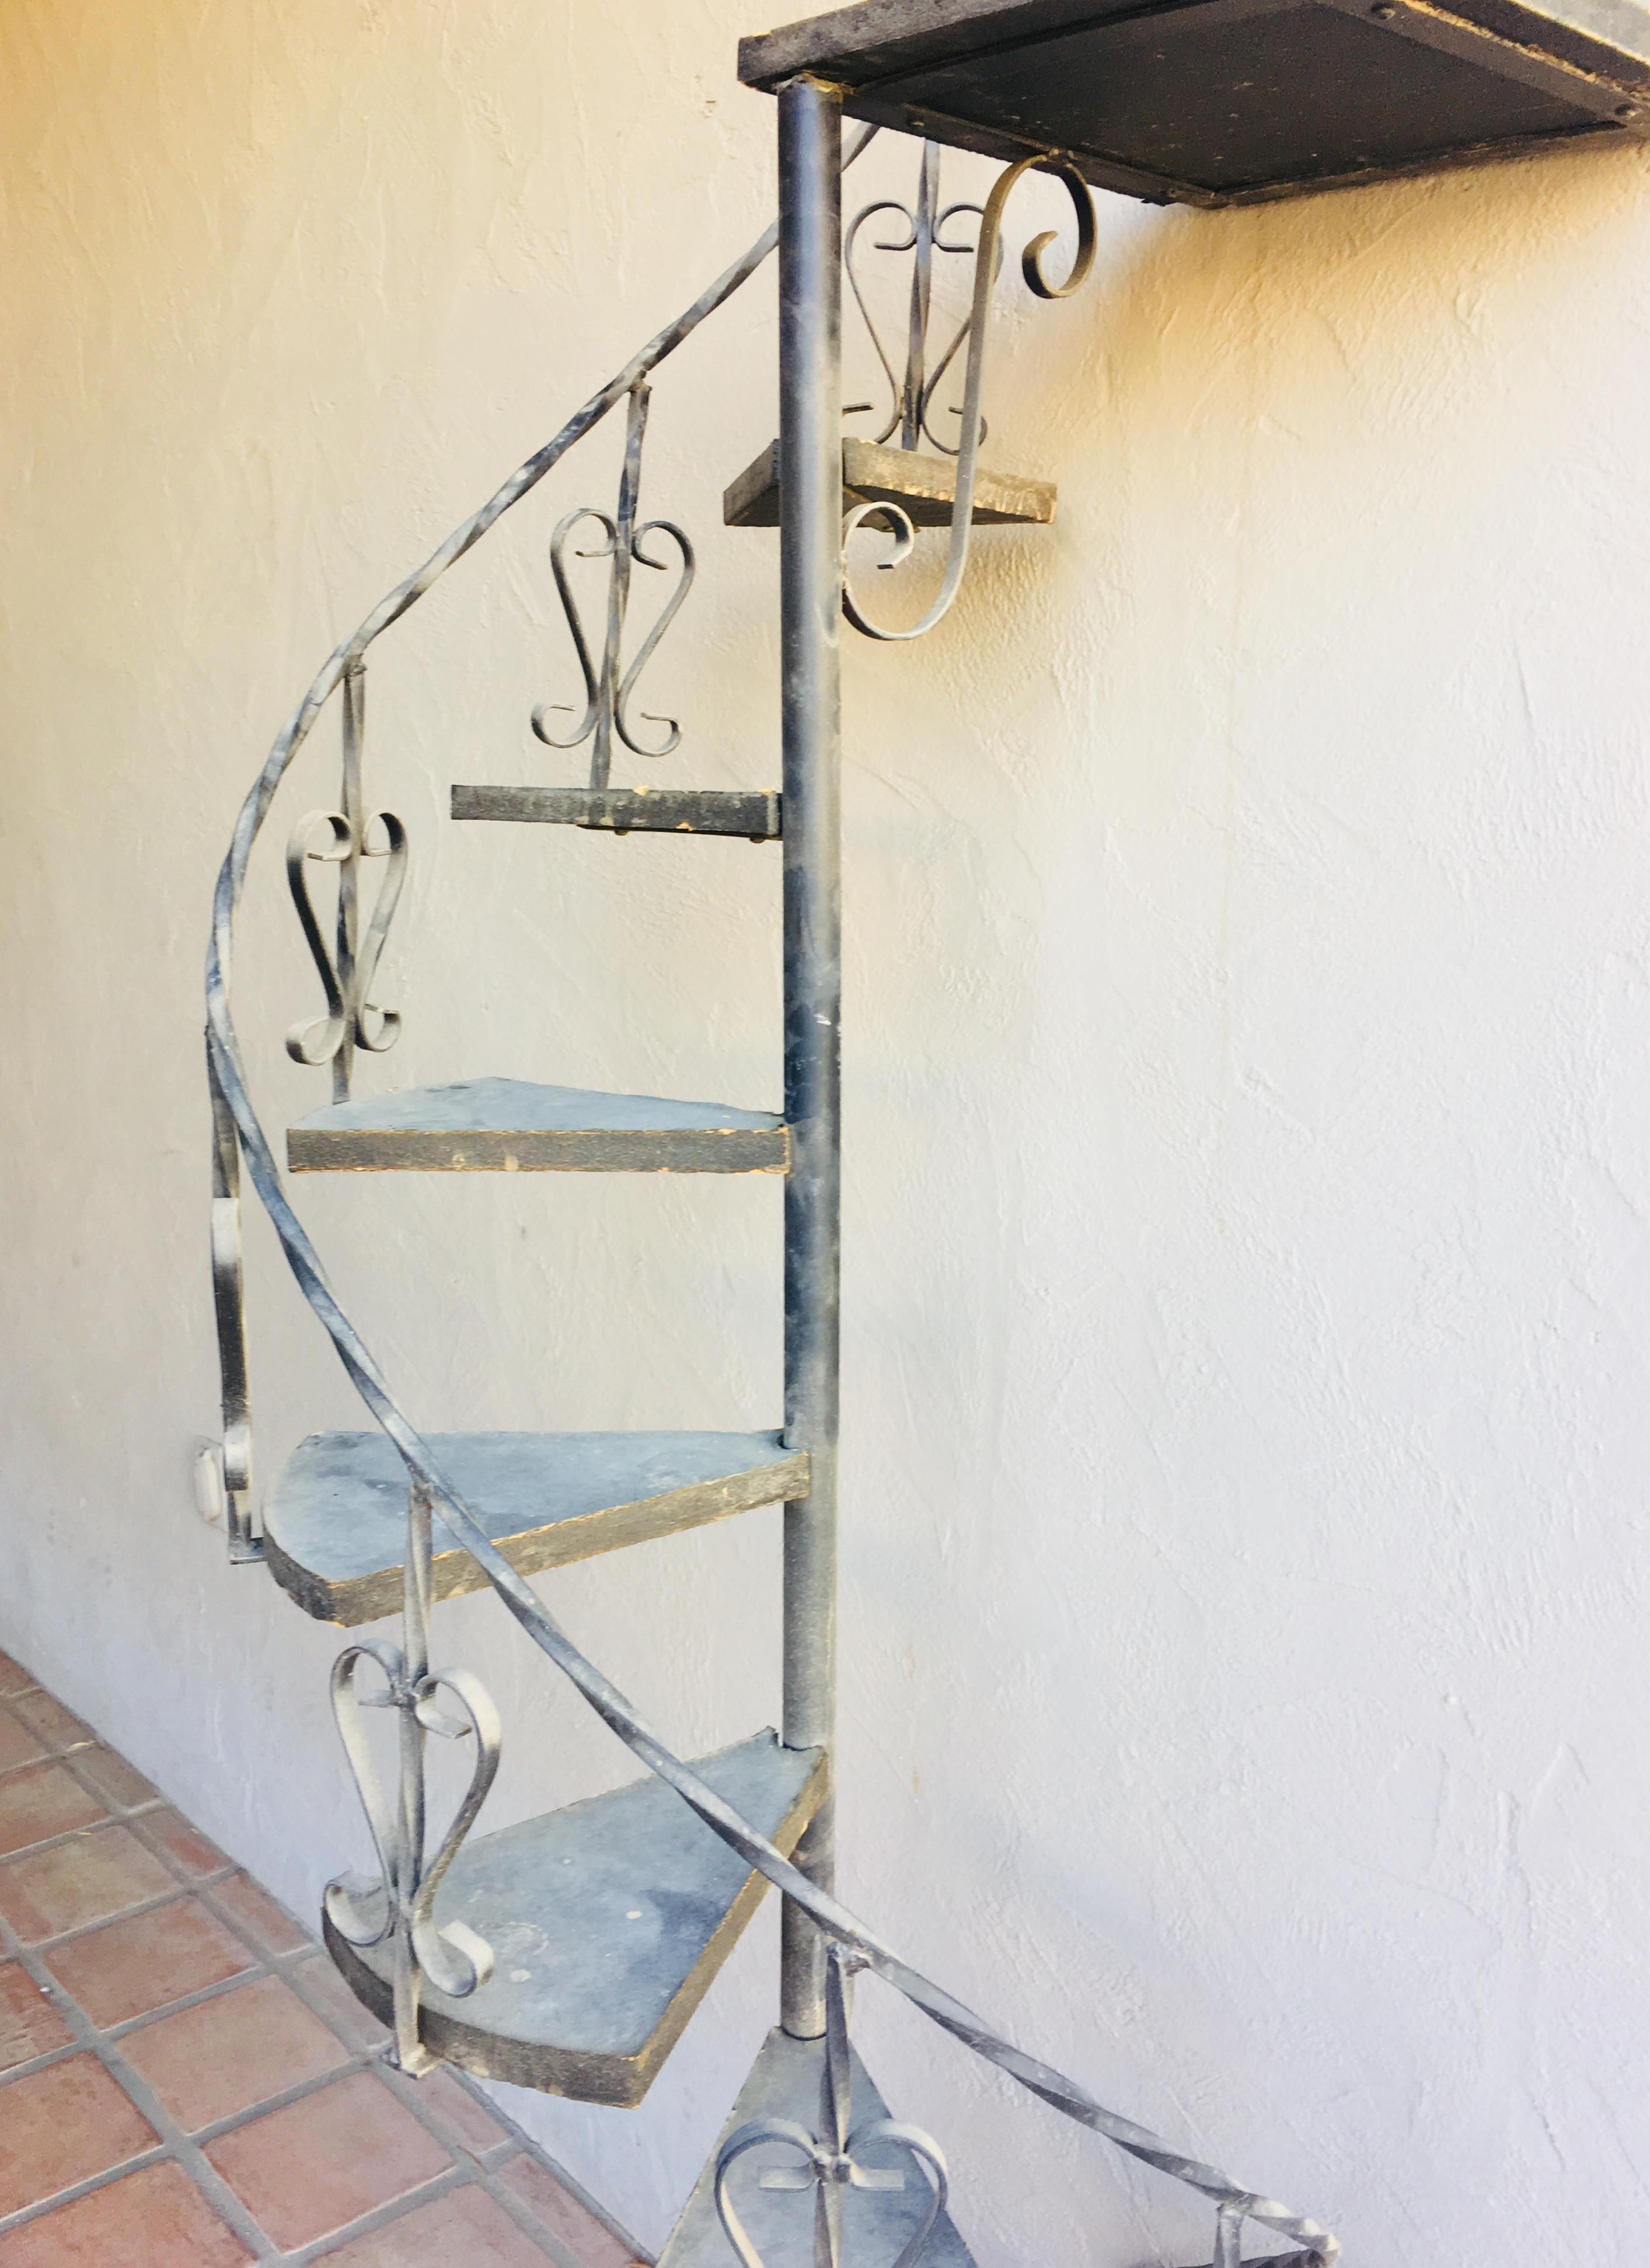 Exceptional Spectacular Vintage Iron Spiral Staircase Plant Stand Garden Decor. Imagine  This Decorated With Glowing Lights